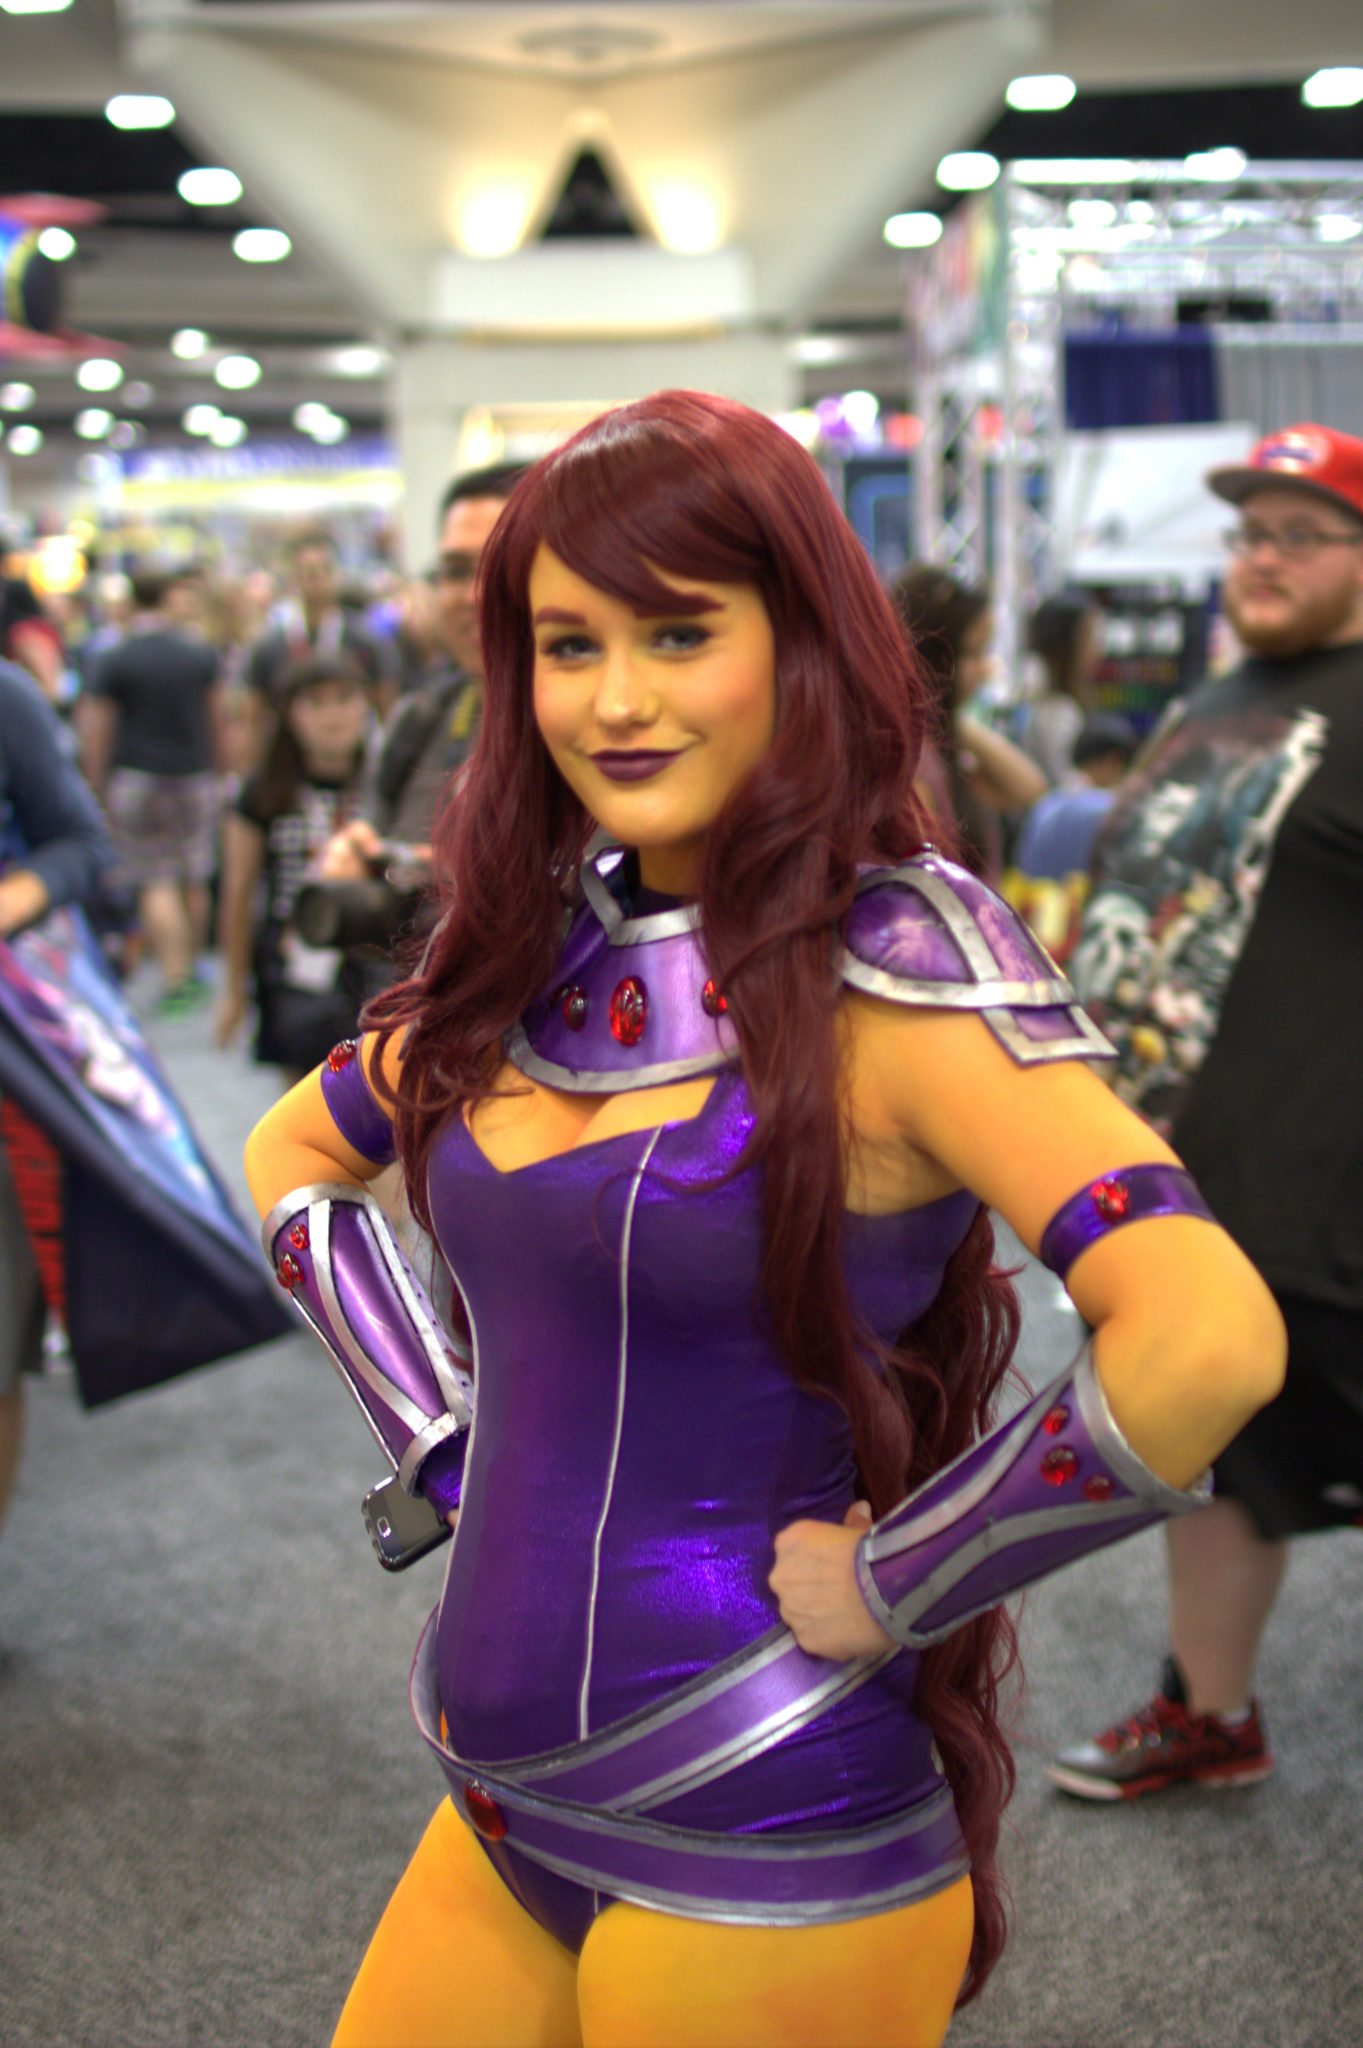 San Diego Comic Con 2015 - Cosplayers 9